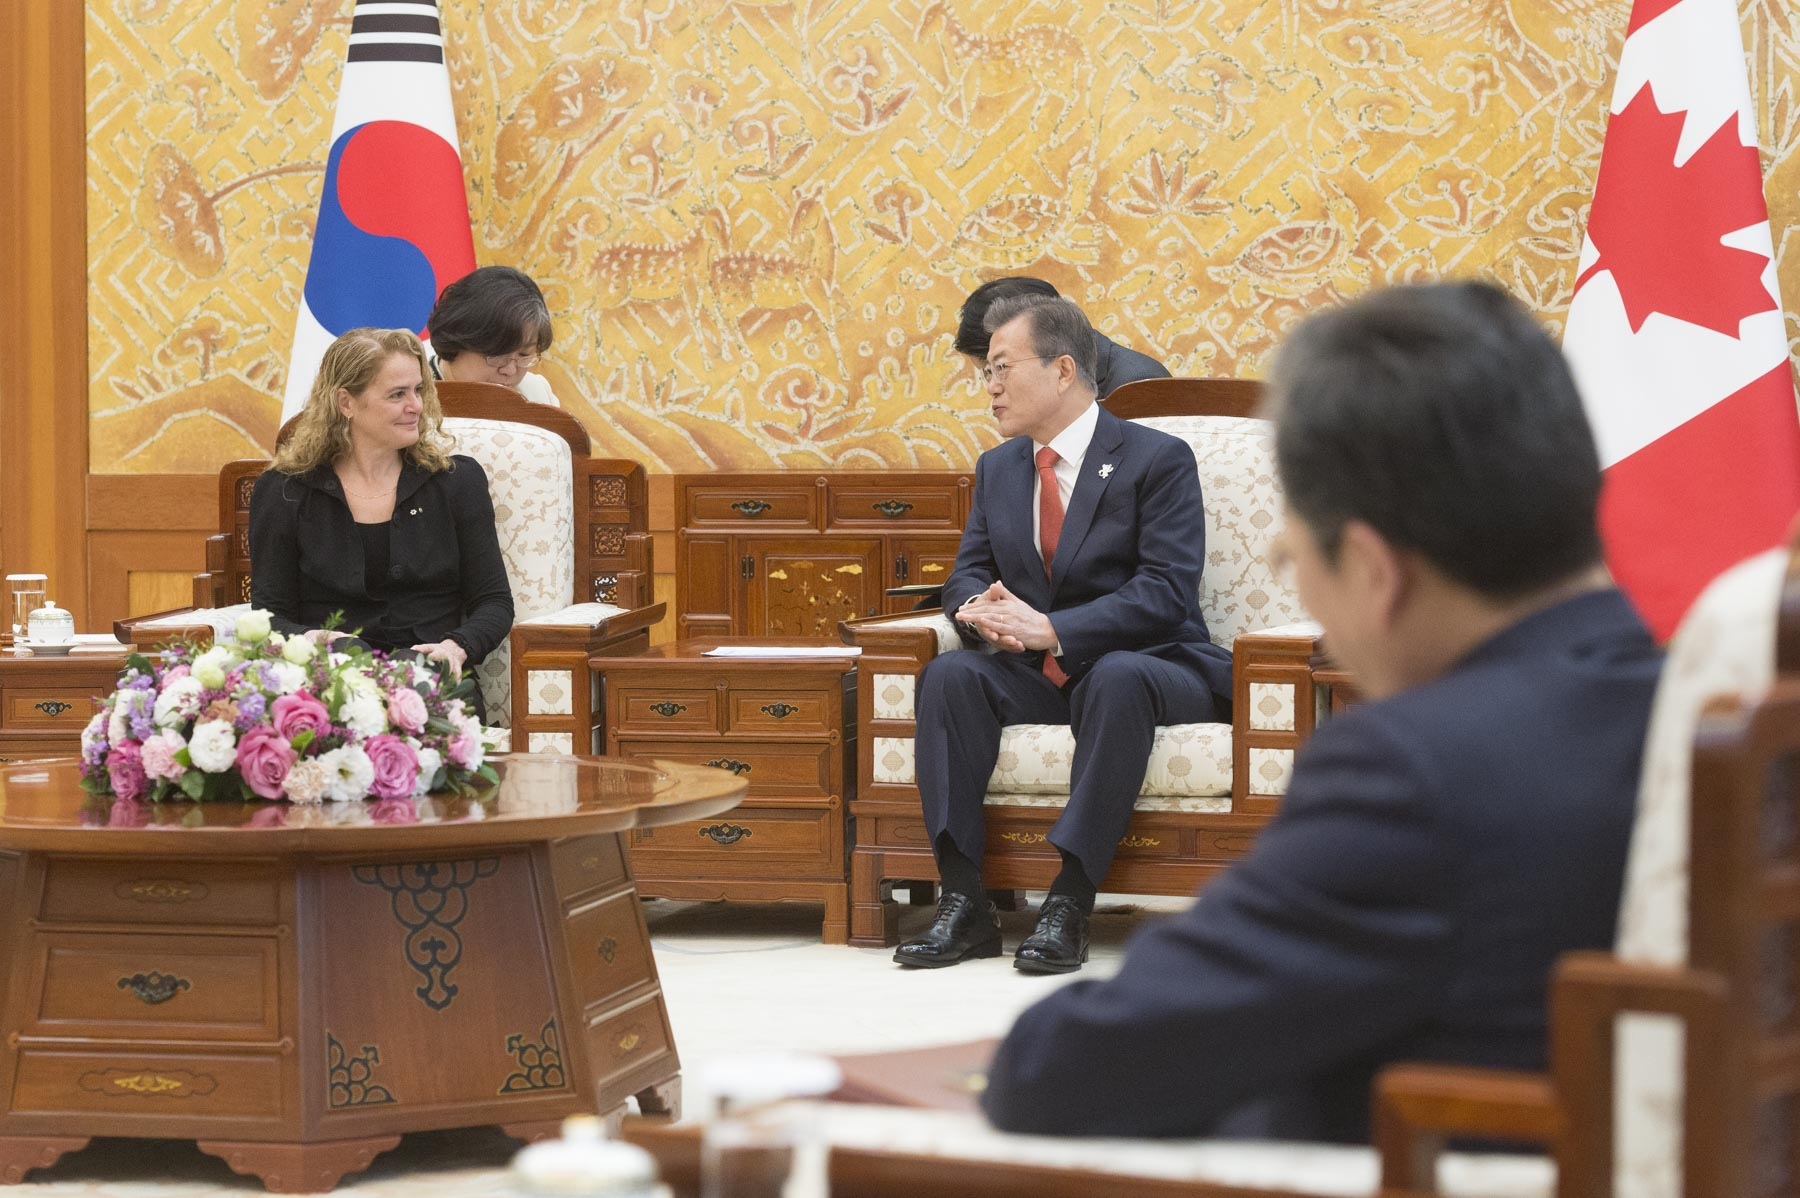 At the request of the Right Honourable Justin Trudeau, Prime Minister of Canada, Her Excellency attended the Olympic Winter Games PyeongChang 2018, in the Republic of Korea, from February 7 to 12, 2018. Upon her arrival in Seoul, she met with His Excellency Moon Jae-in, President of the Republic of Korea, at the Blue House.